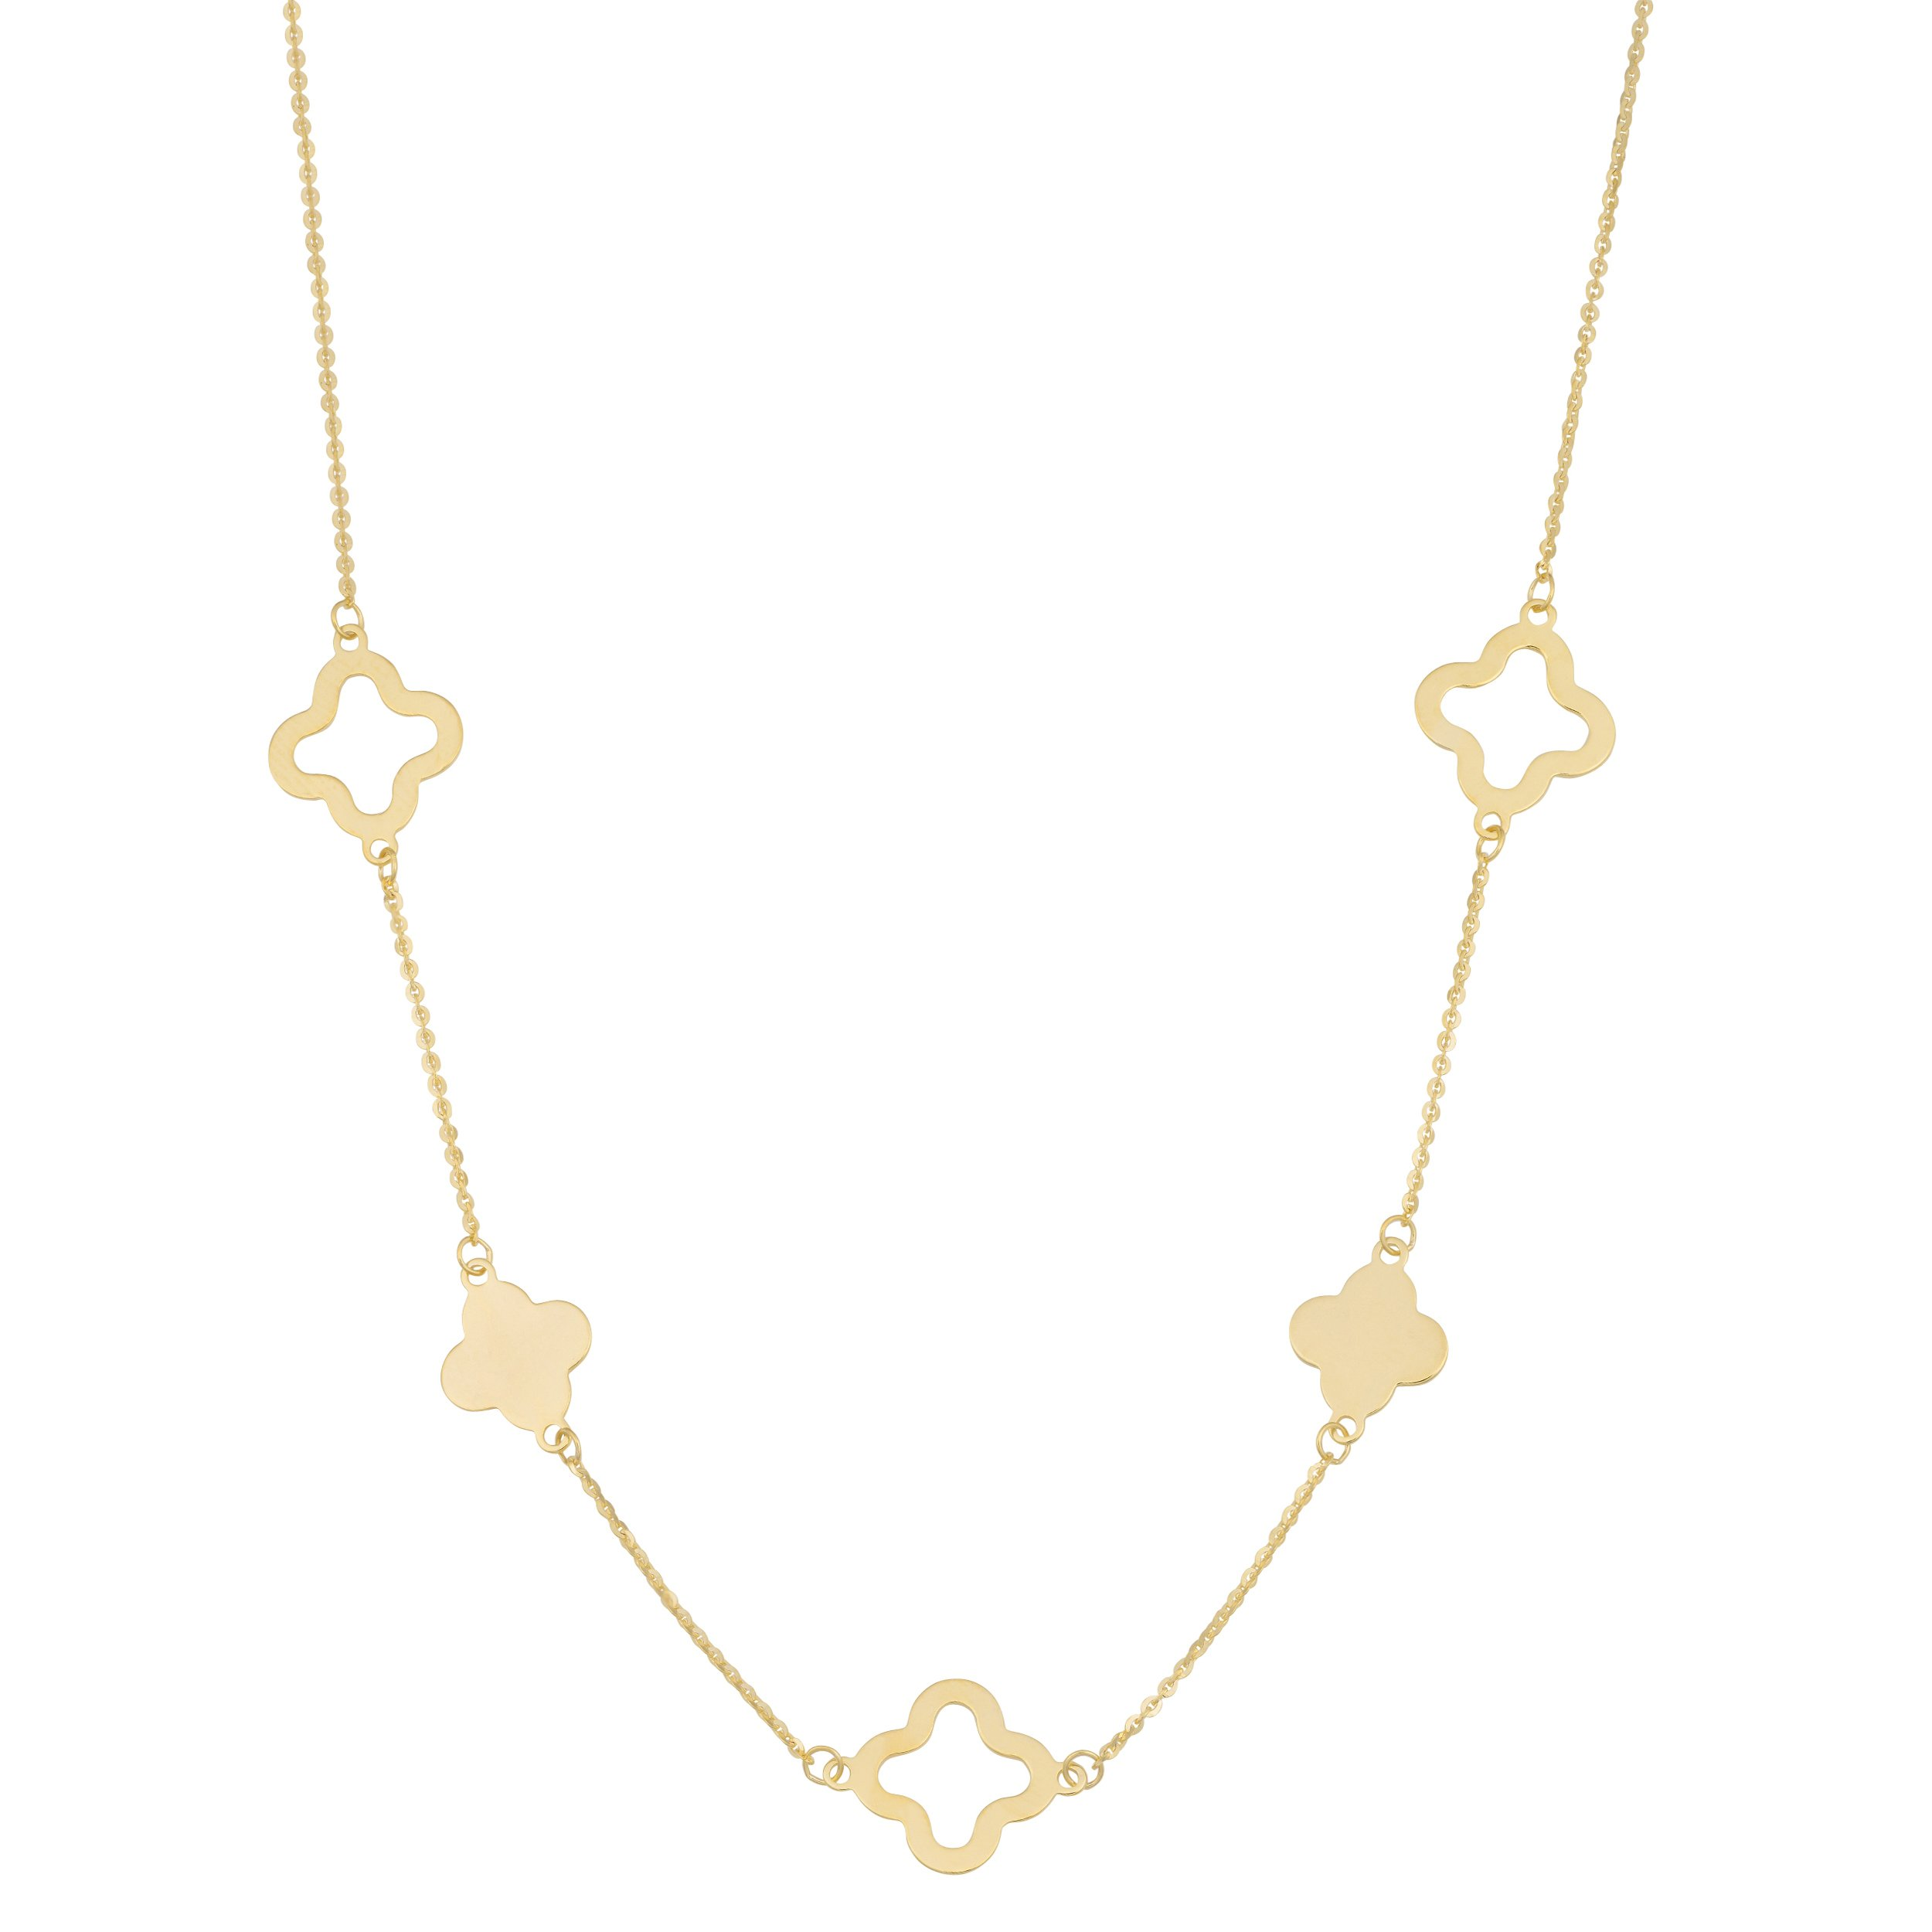 14k Yellow Gold Clover Station Necklace (18 inch) by Kooljewelry